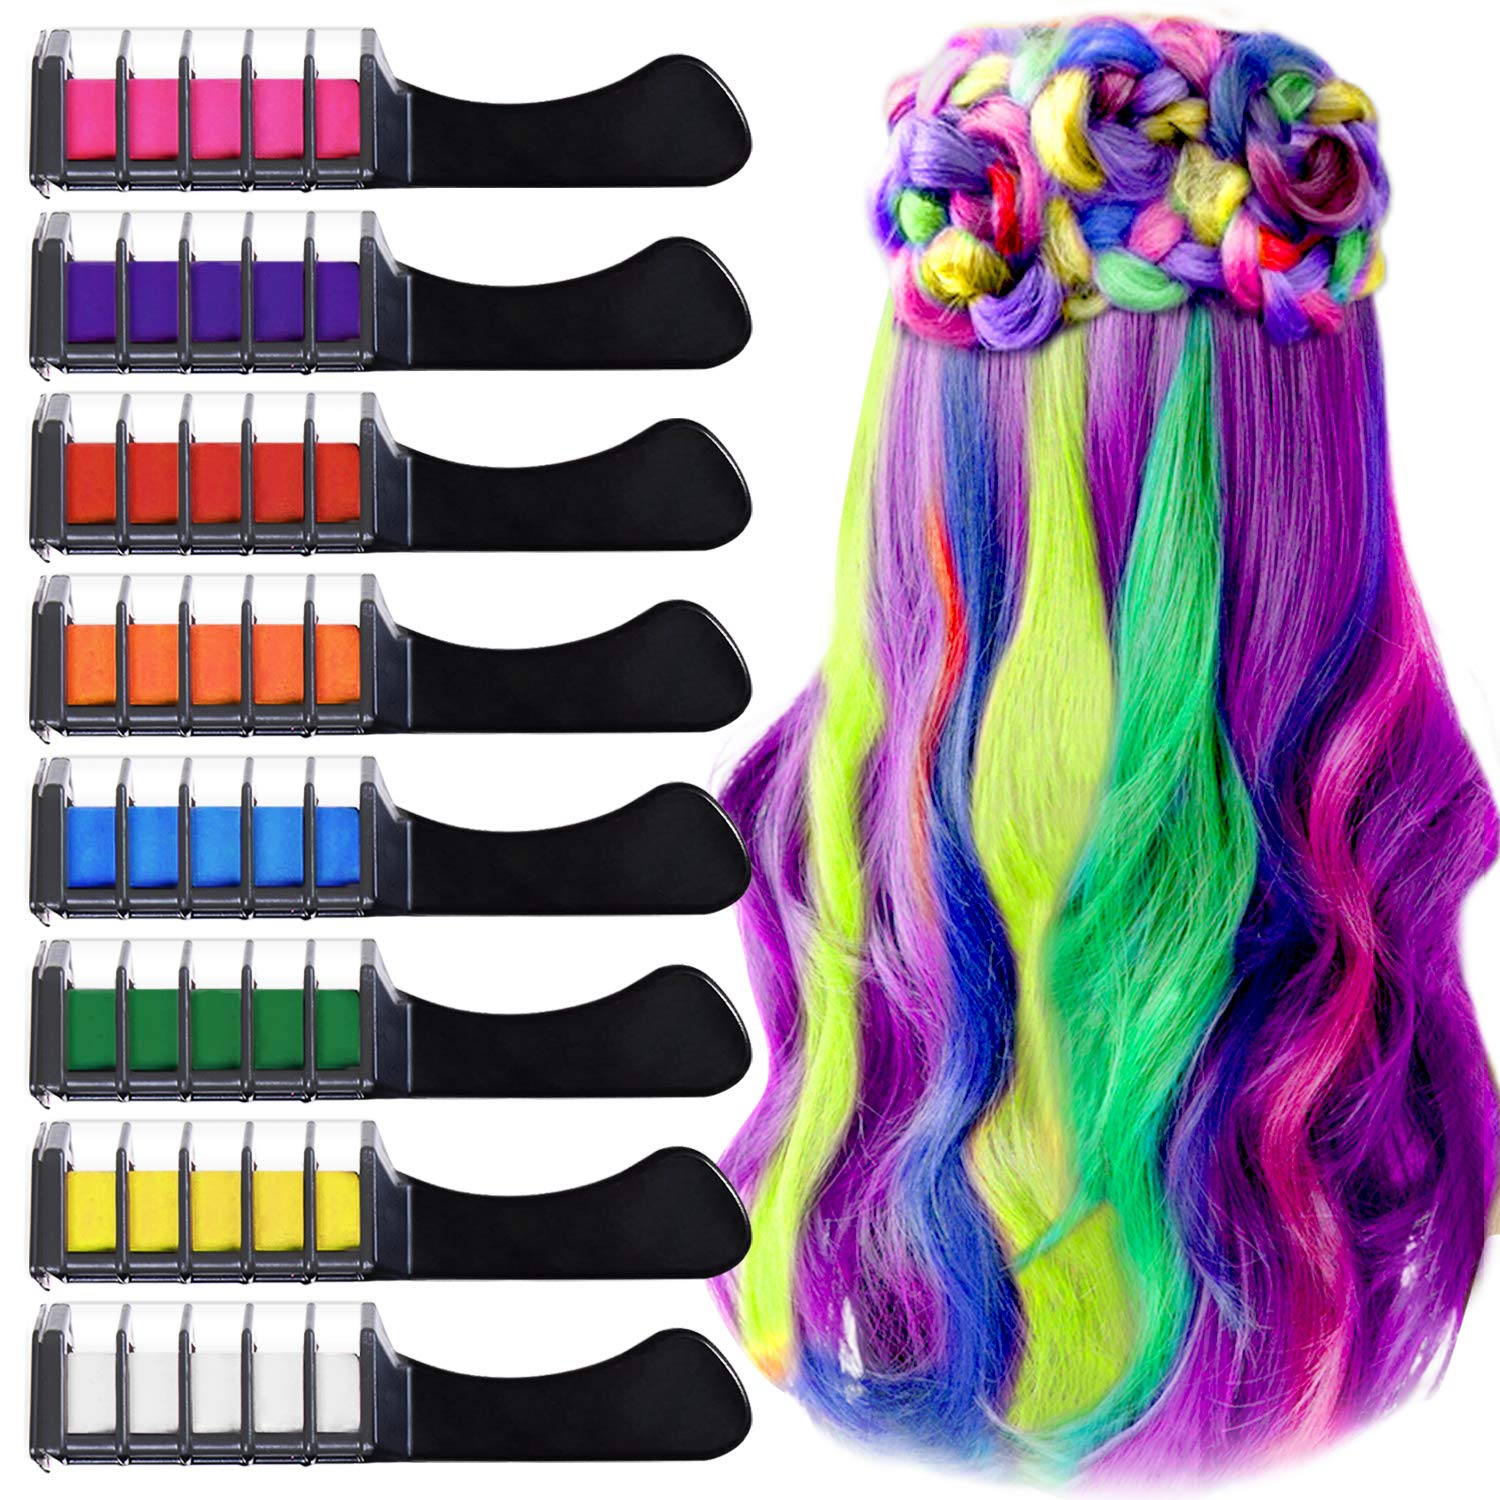 Charlotte Mall quality assurance Kalolary Temporary Hair Color for Washable Rainbo 8 Kids Colors